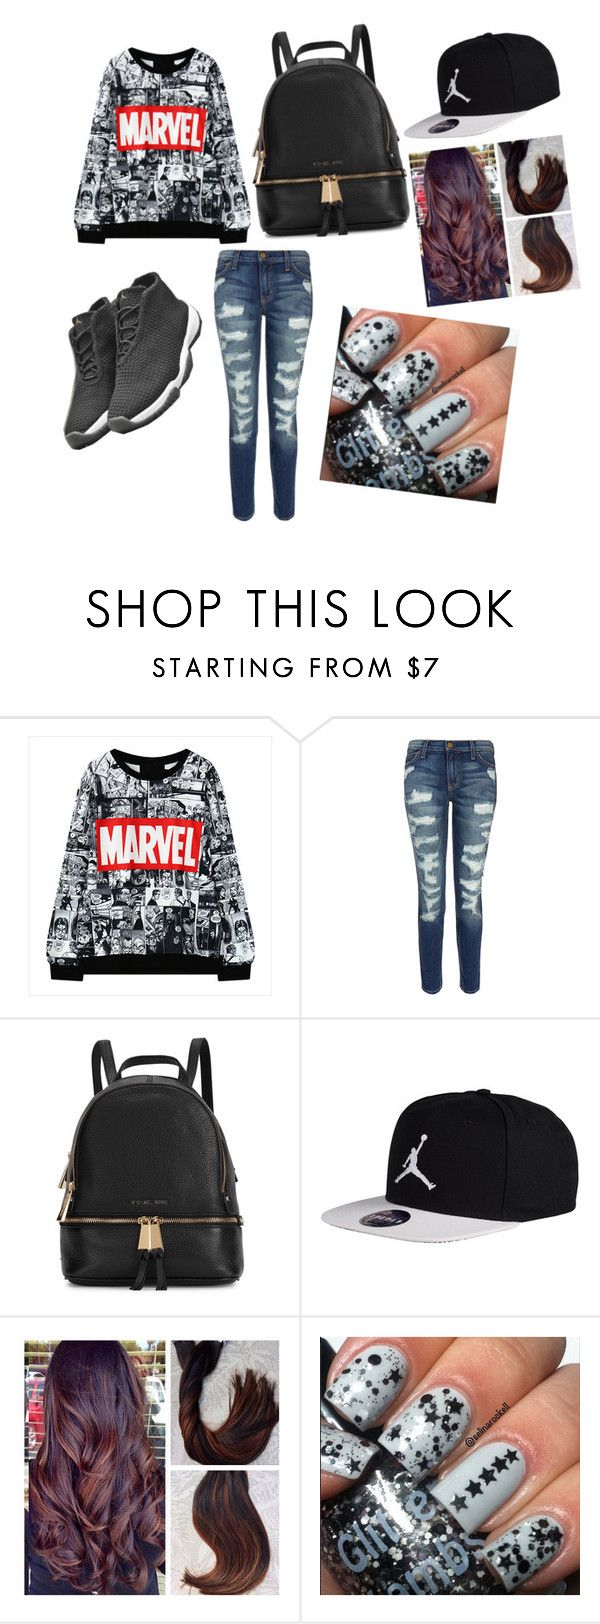 """geeky but cute"" by pinky-angel827 ❤ liked on Polyvore featuring Current/Elliott, Freaker, Michael Kors, women's clothing, women, female, woman, misses and juniors"